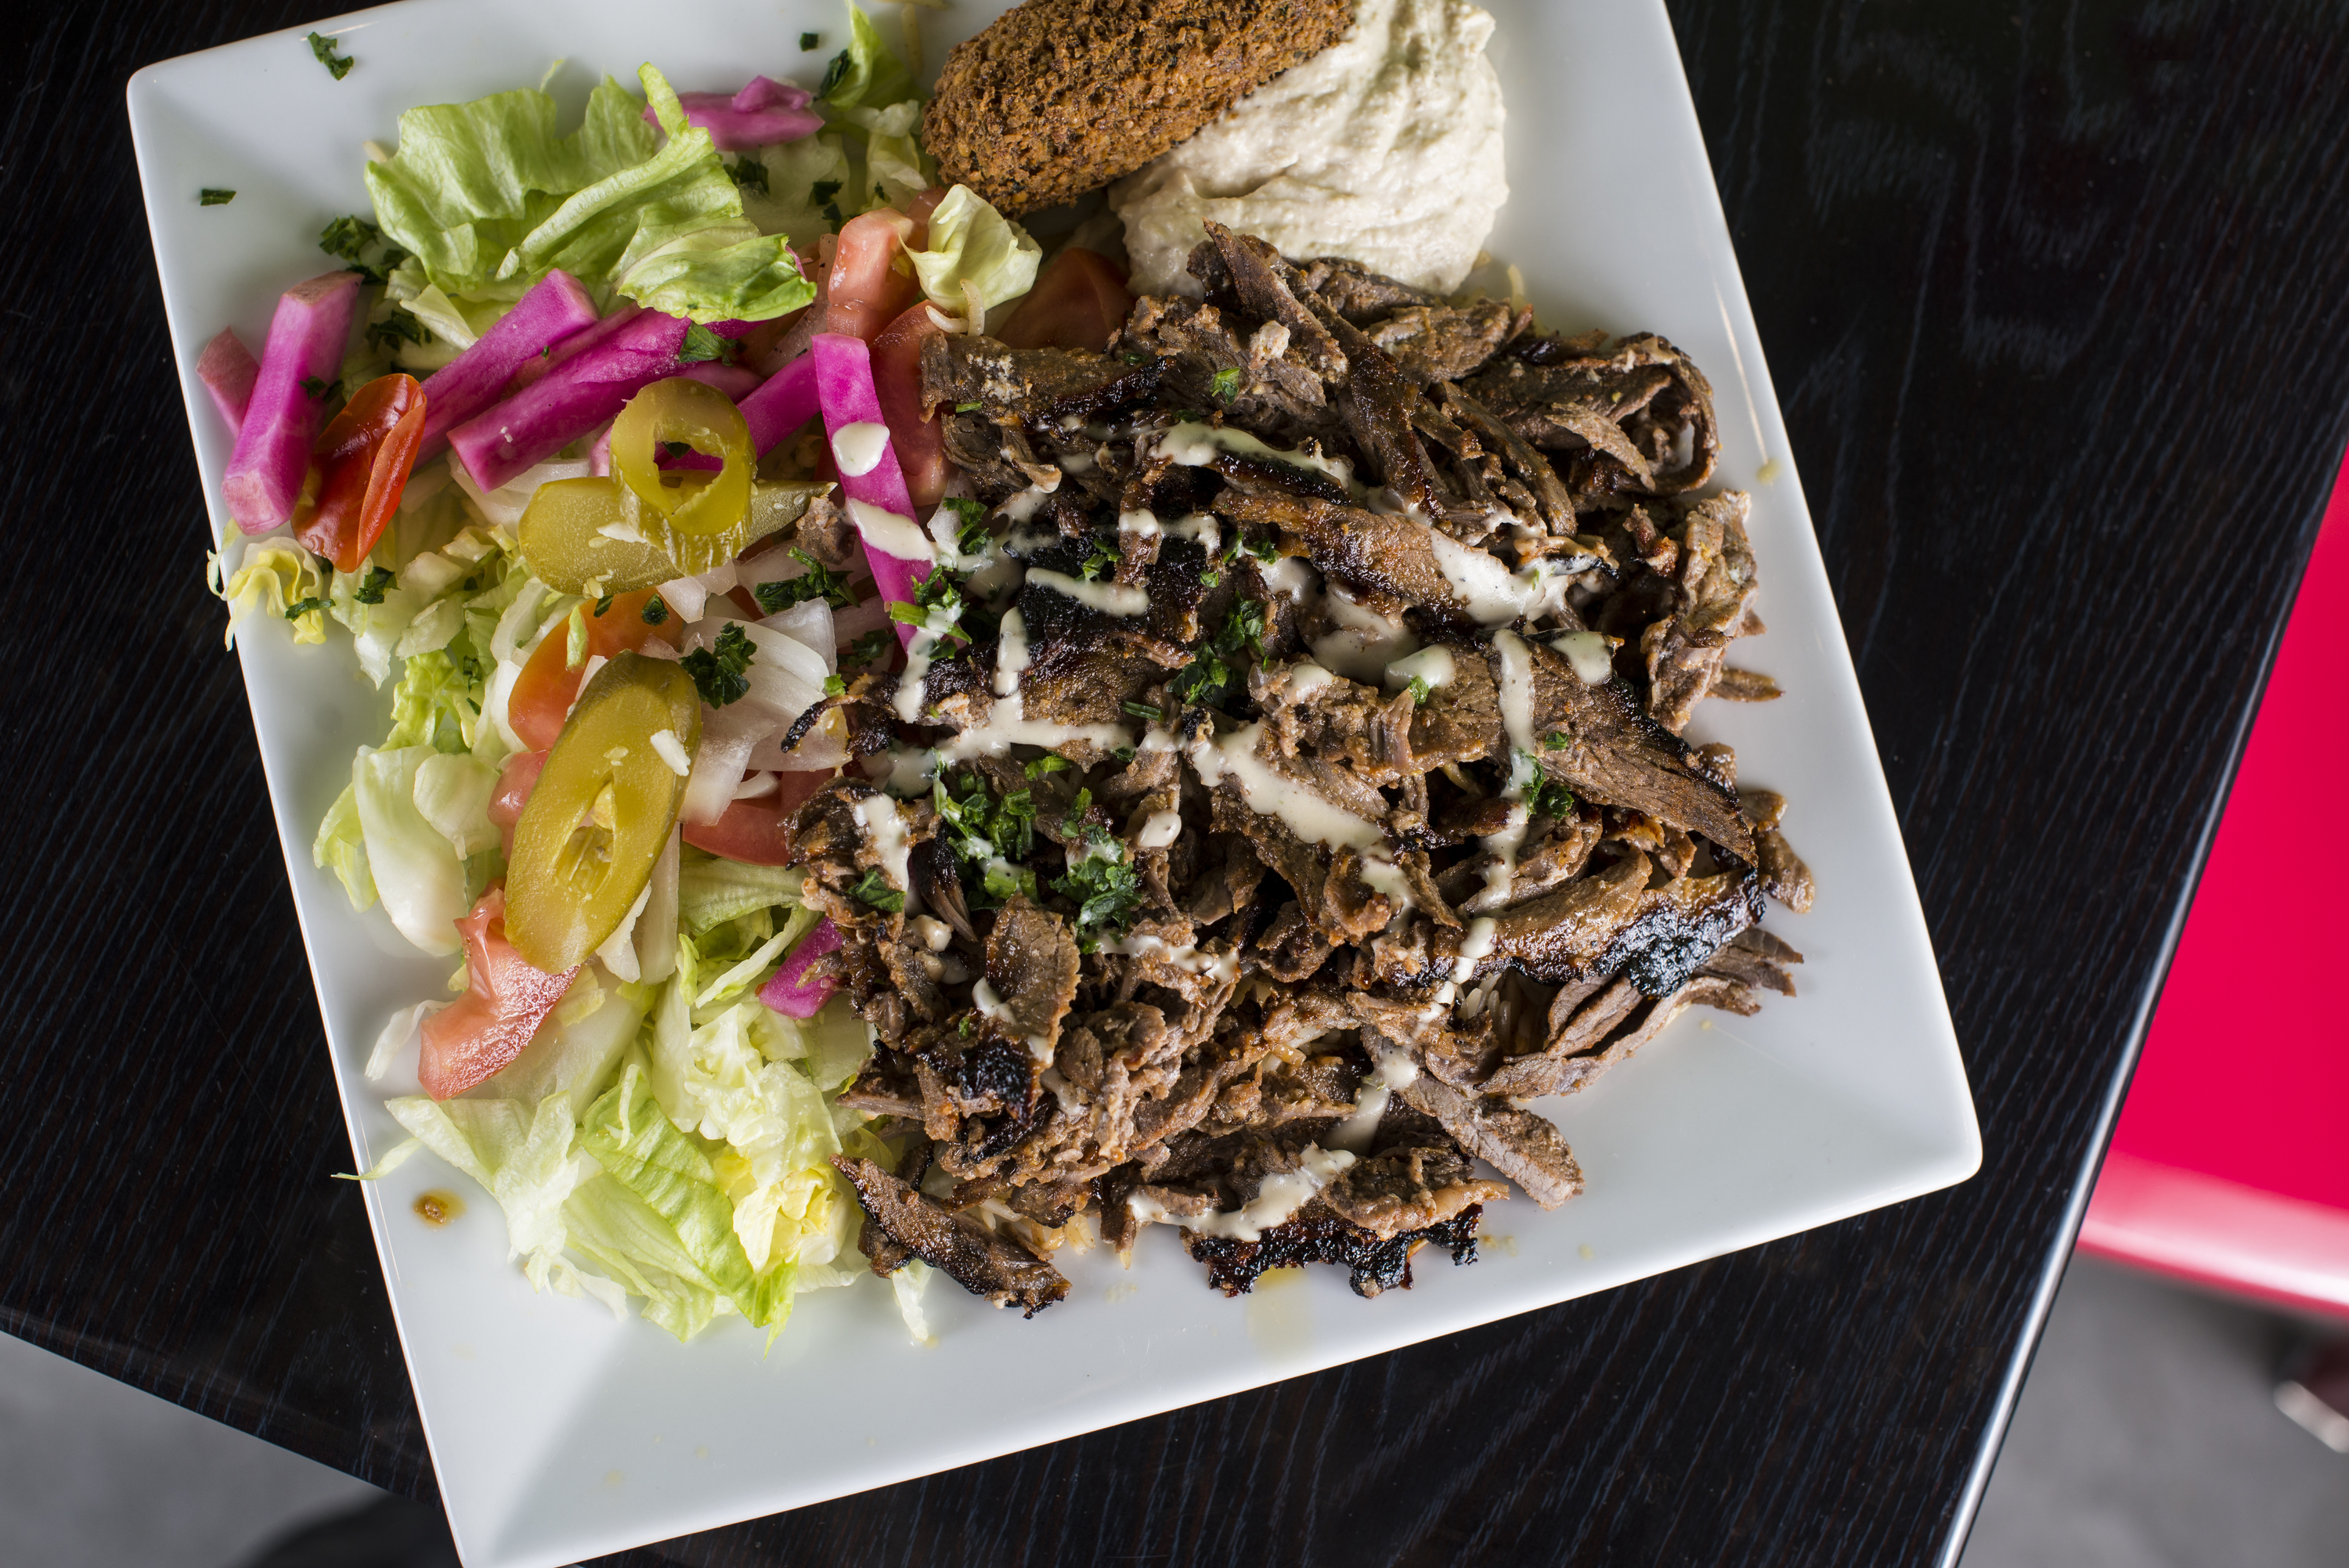 Shawarma platter at King of Falafel